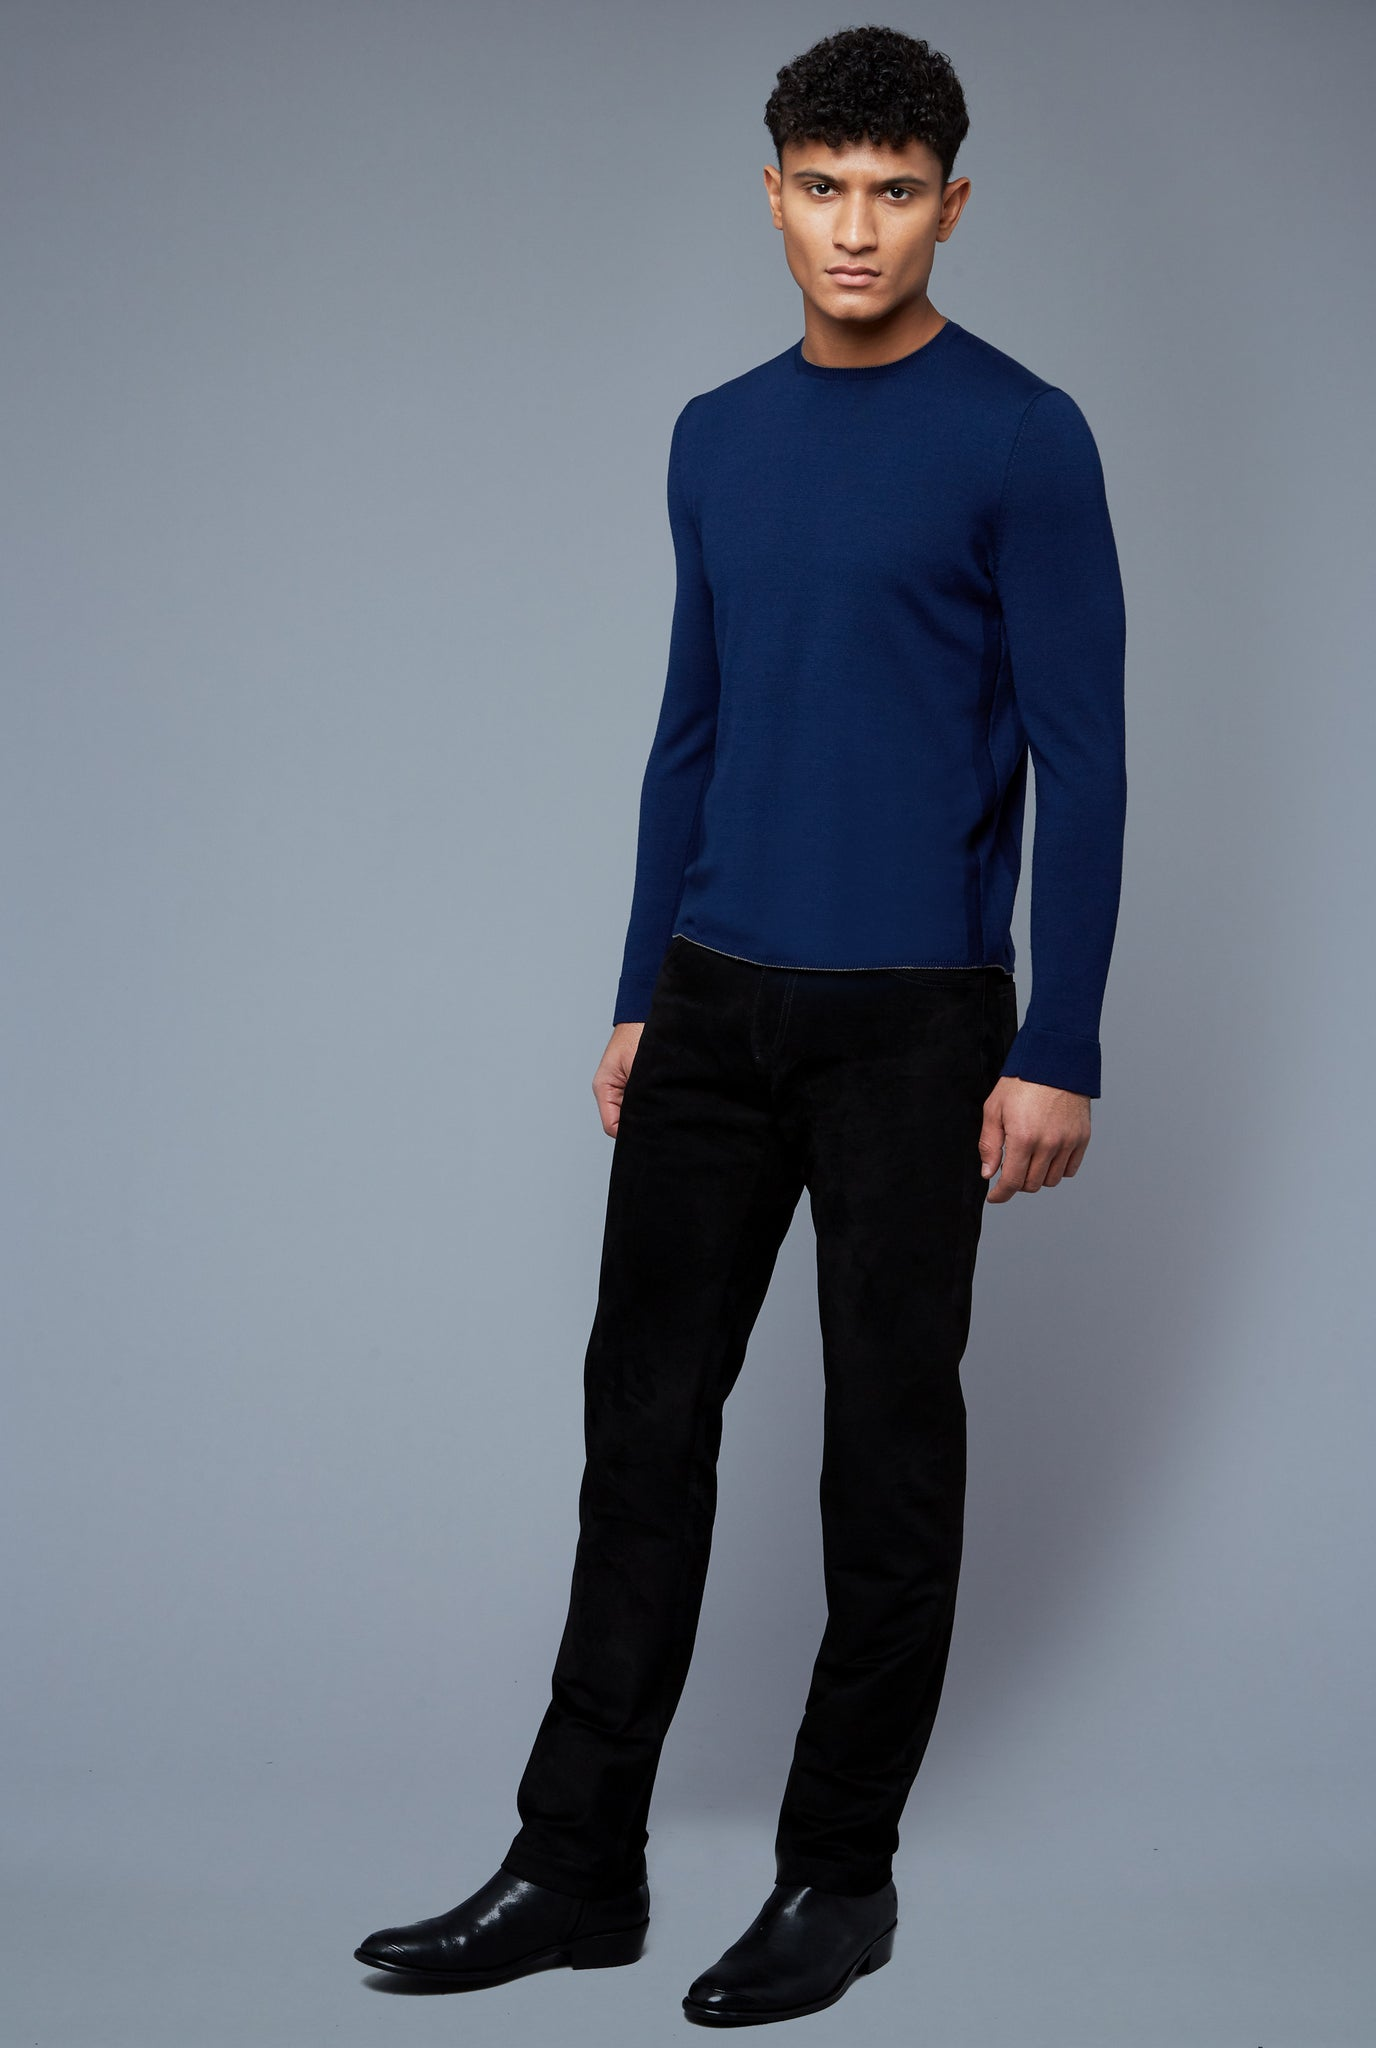 Three Quarter View: Model Tre Boutilier wearing Long Sleeve Sweater Tee